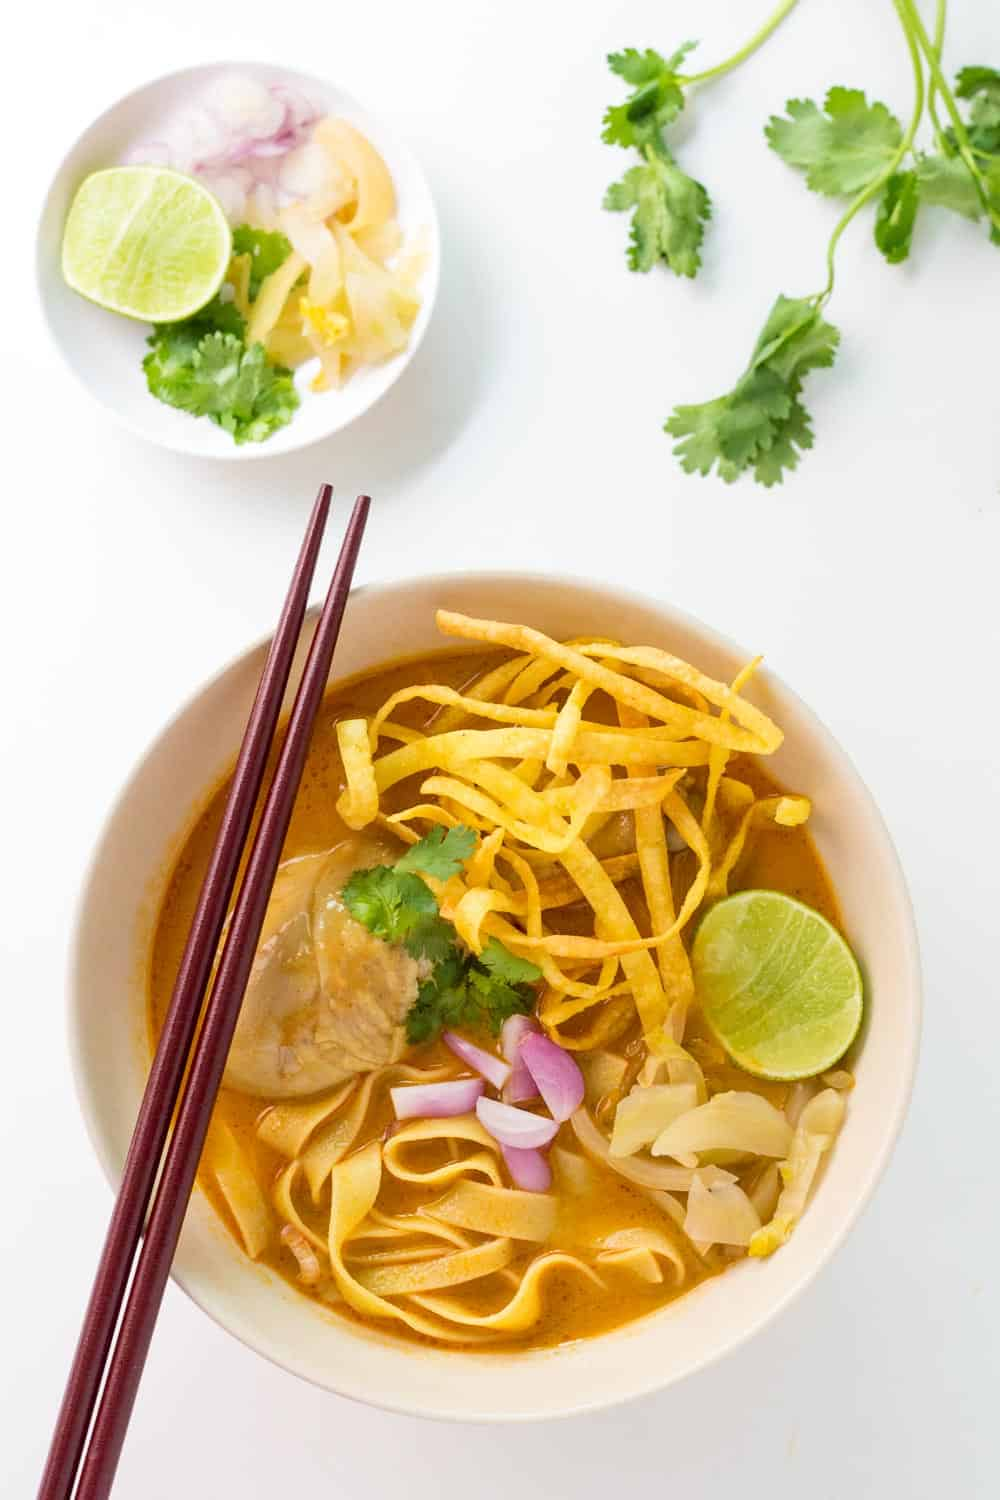 This is an easy recipe for Khao Soi - a Northern Thai Coconut Curry Soup with Egg Noodles and Chicken. It is an amazingly balanced dish with spicy, sweet, creamy, and crispy elements.